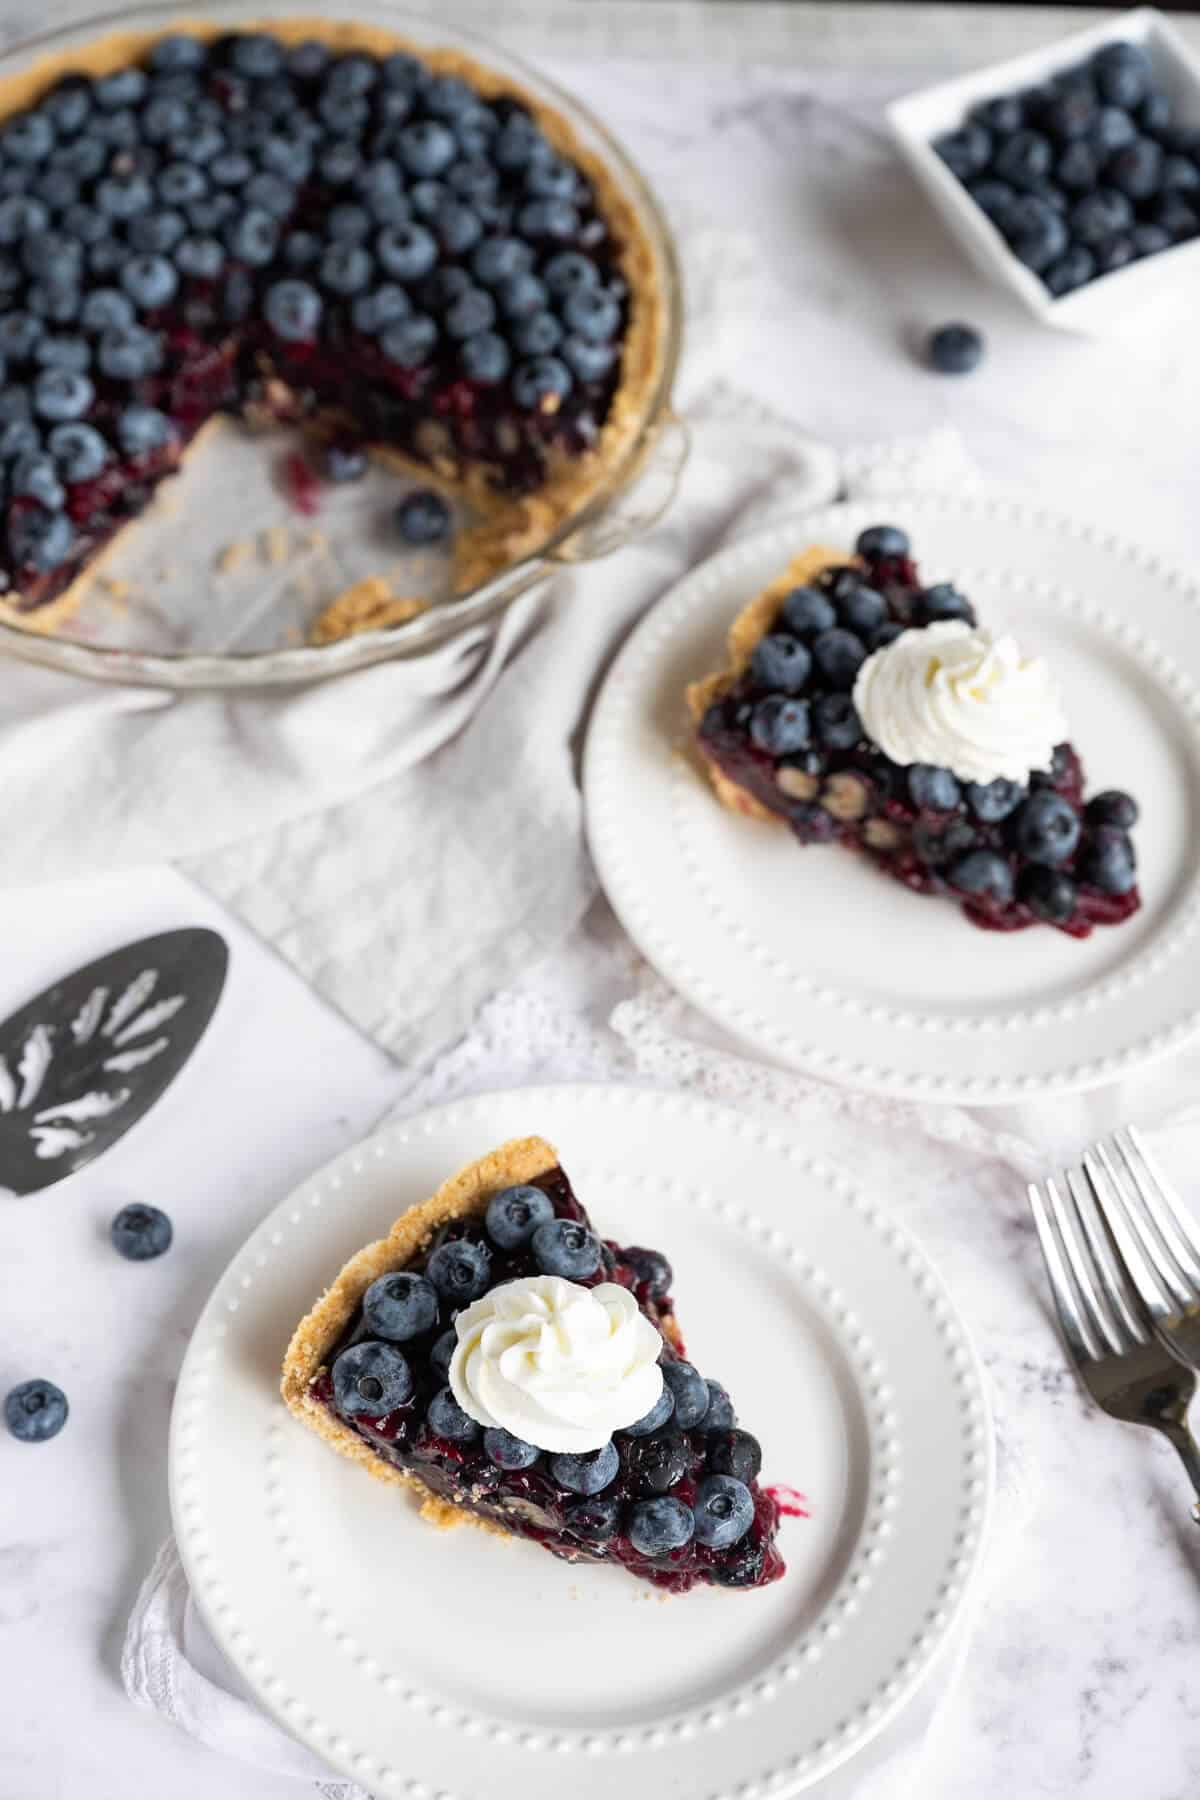 two slices of blueberry pie plated next to whole pie